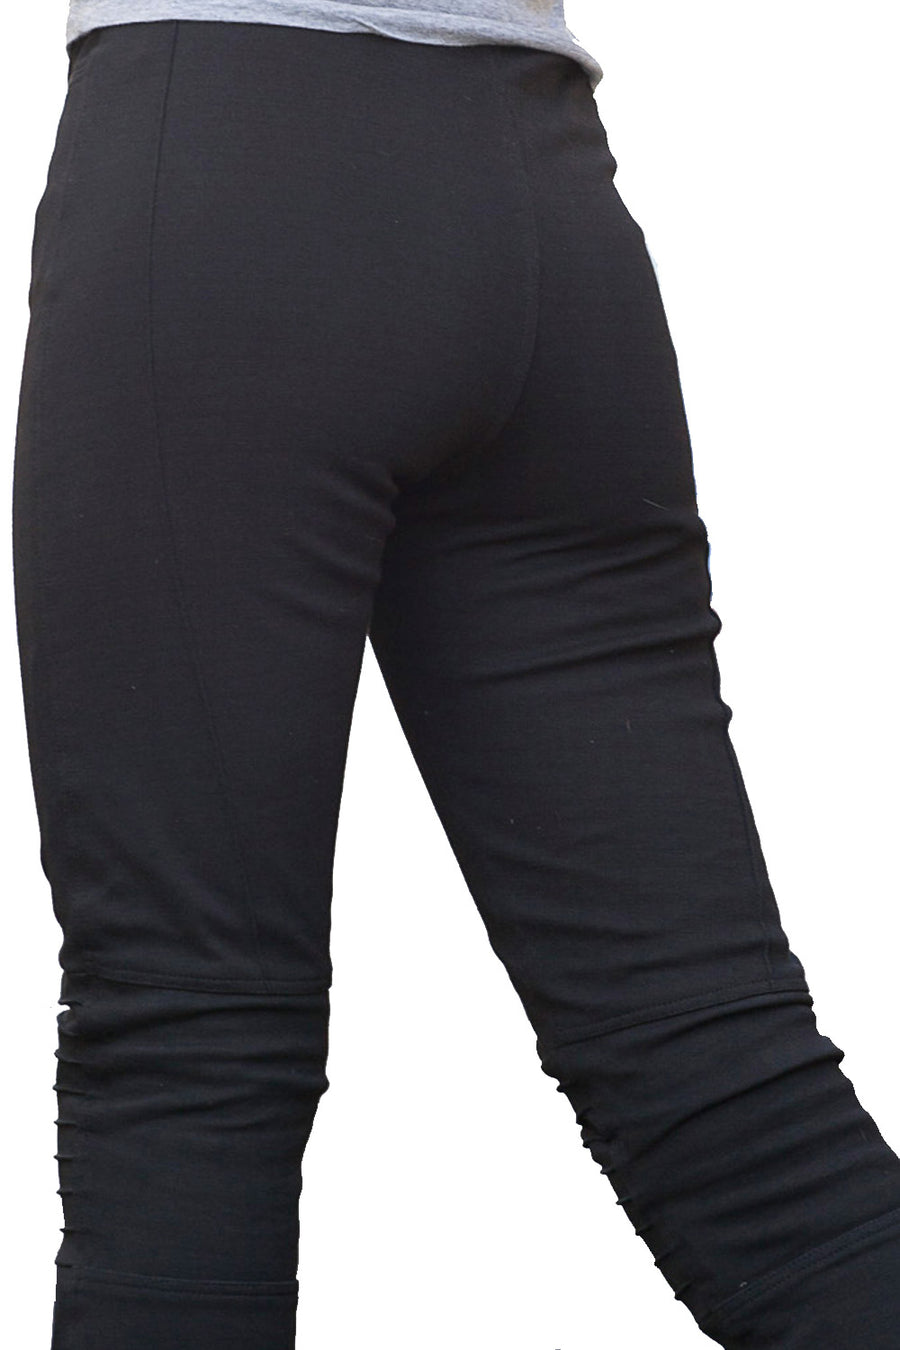 Women's Armoured Protective Motorcycle Leggings